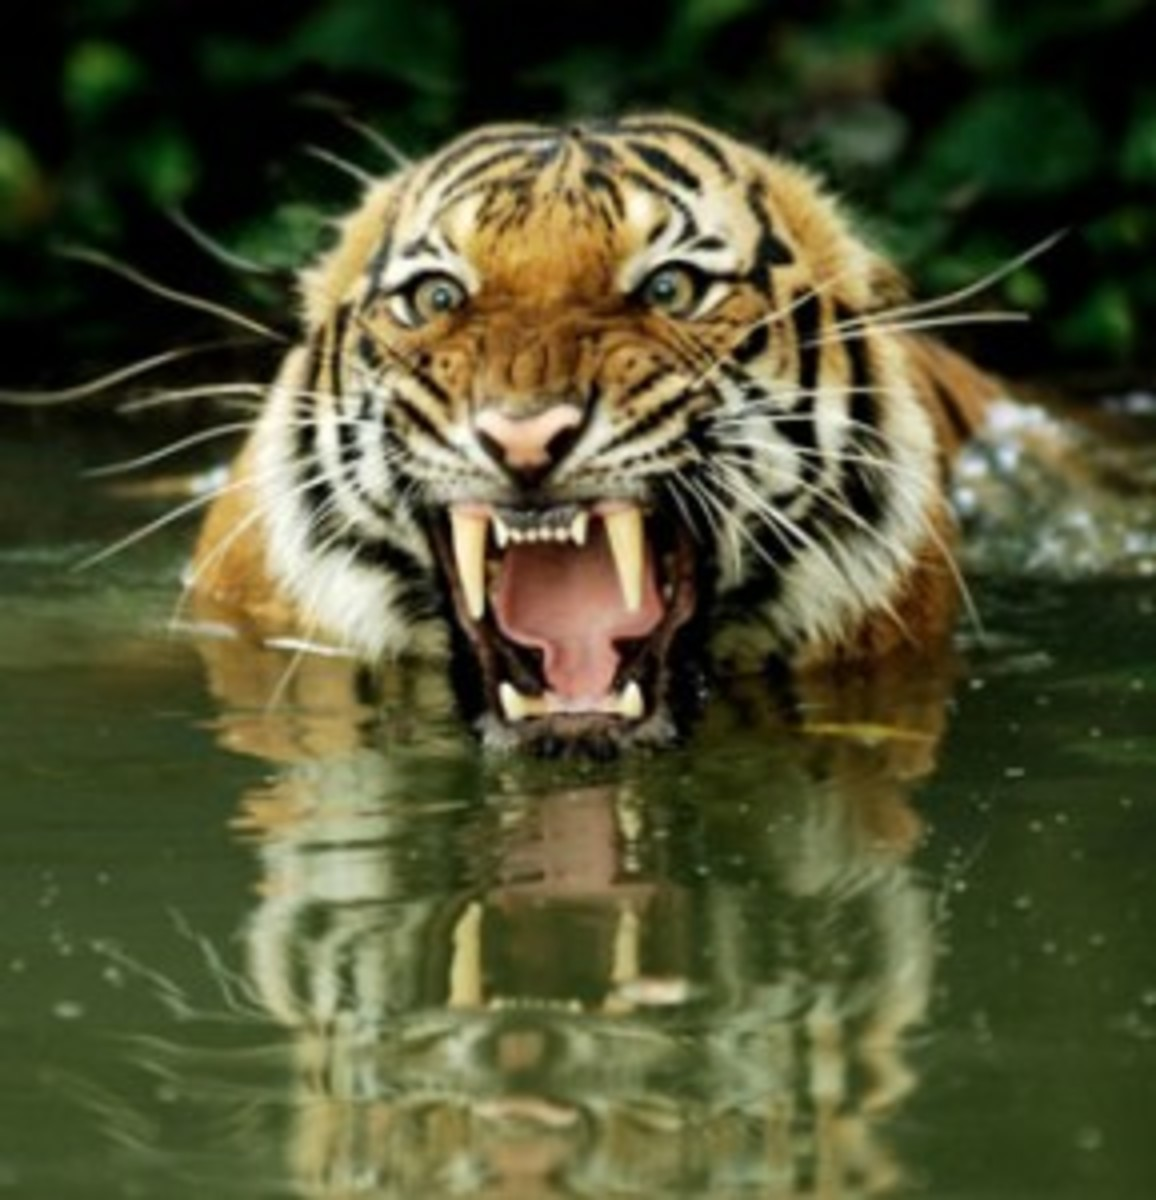 THE TIGER NEXT DOOR Living with man-eating Tigers